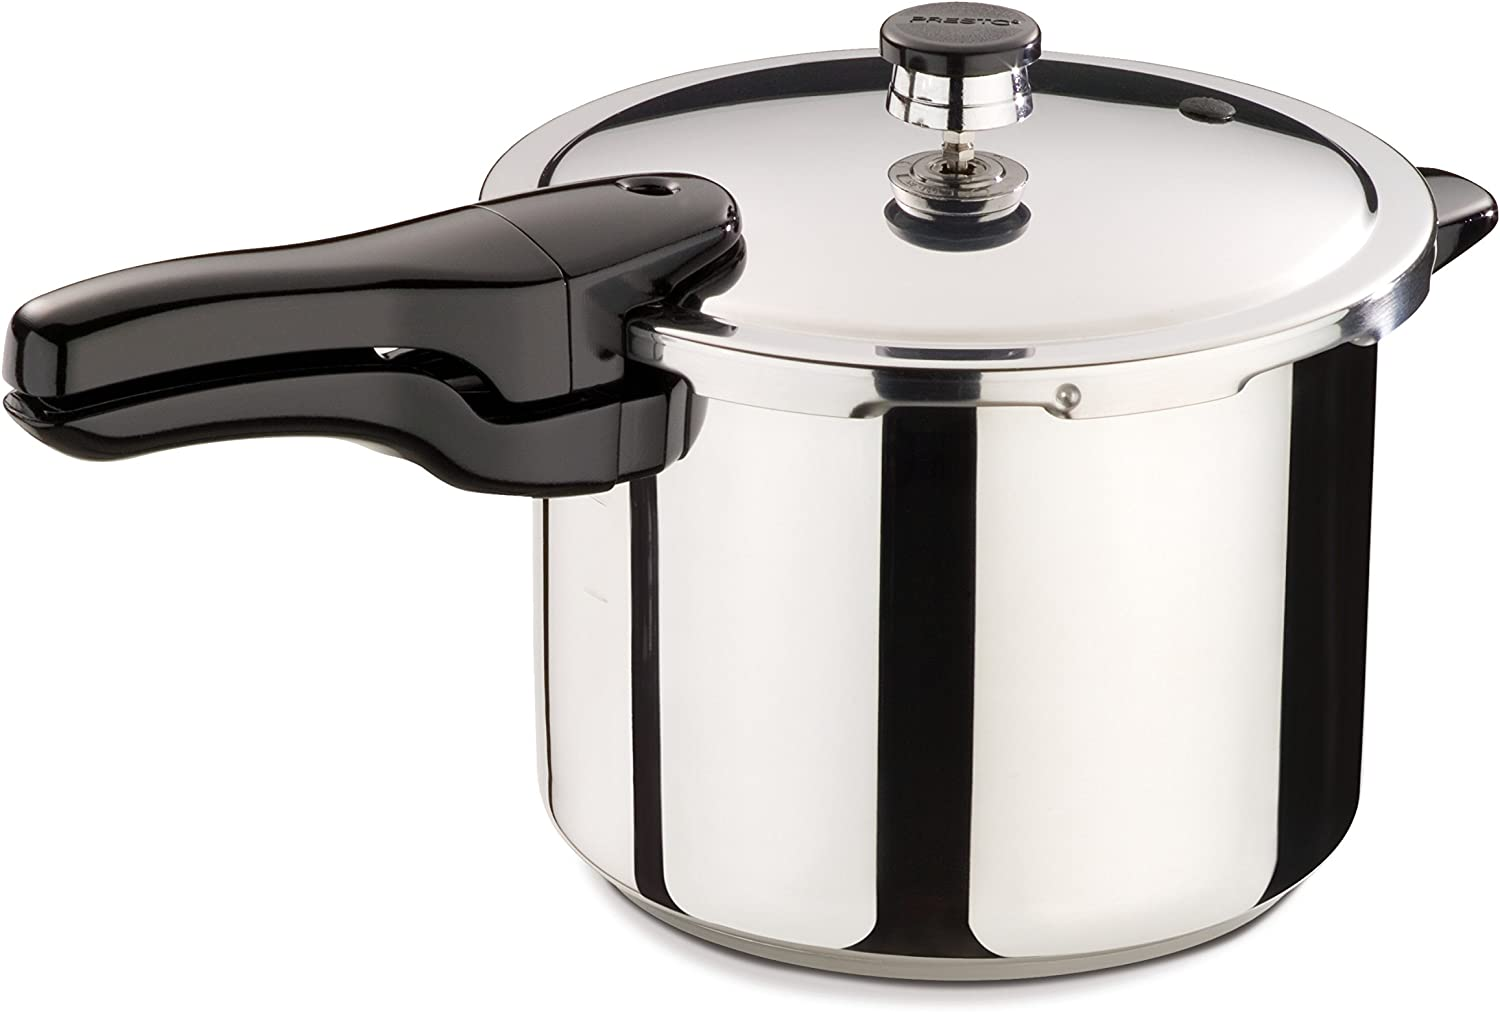 How Long Does a Stainless Steel Pressure Cooker Take To Preheat?